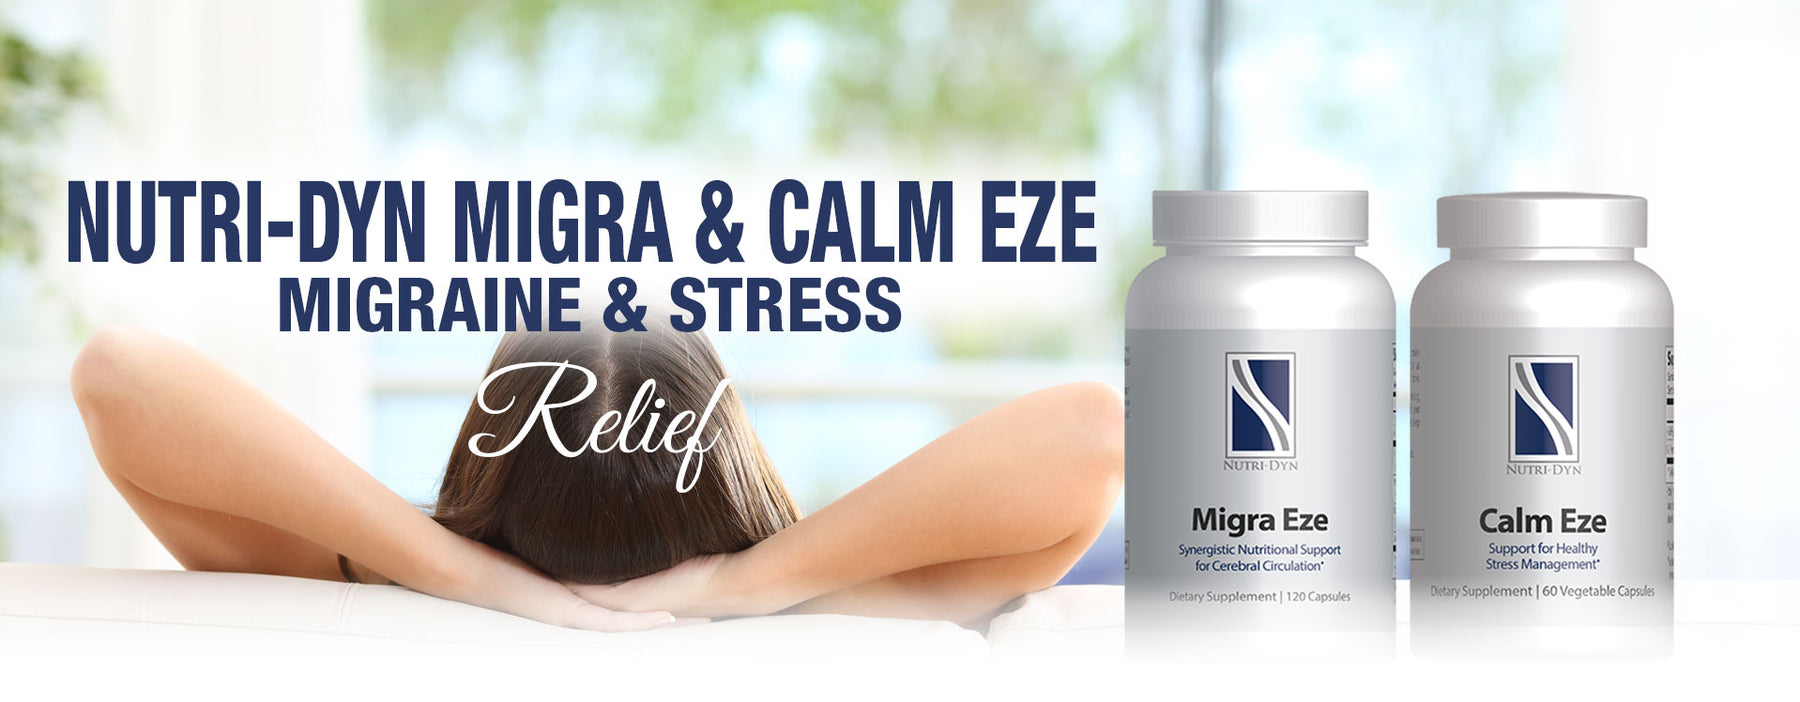 Migra Eze & Calm Eze by Nutri-Dyn for Migraine and Stress Relief